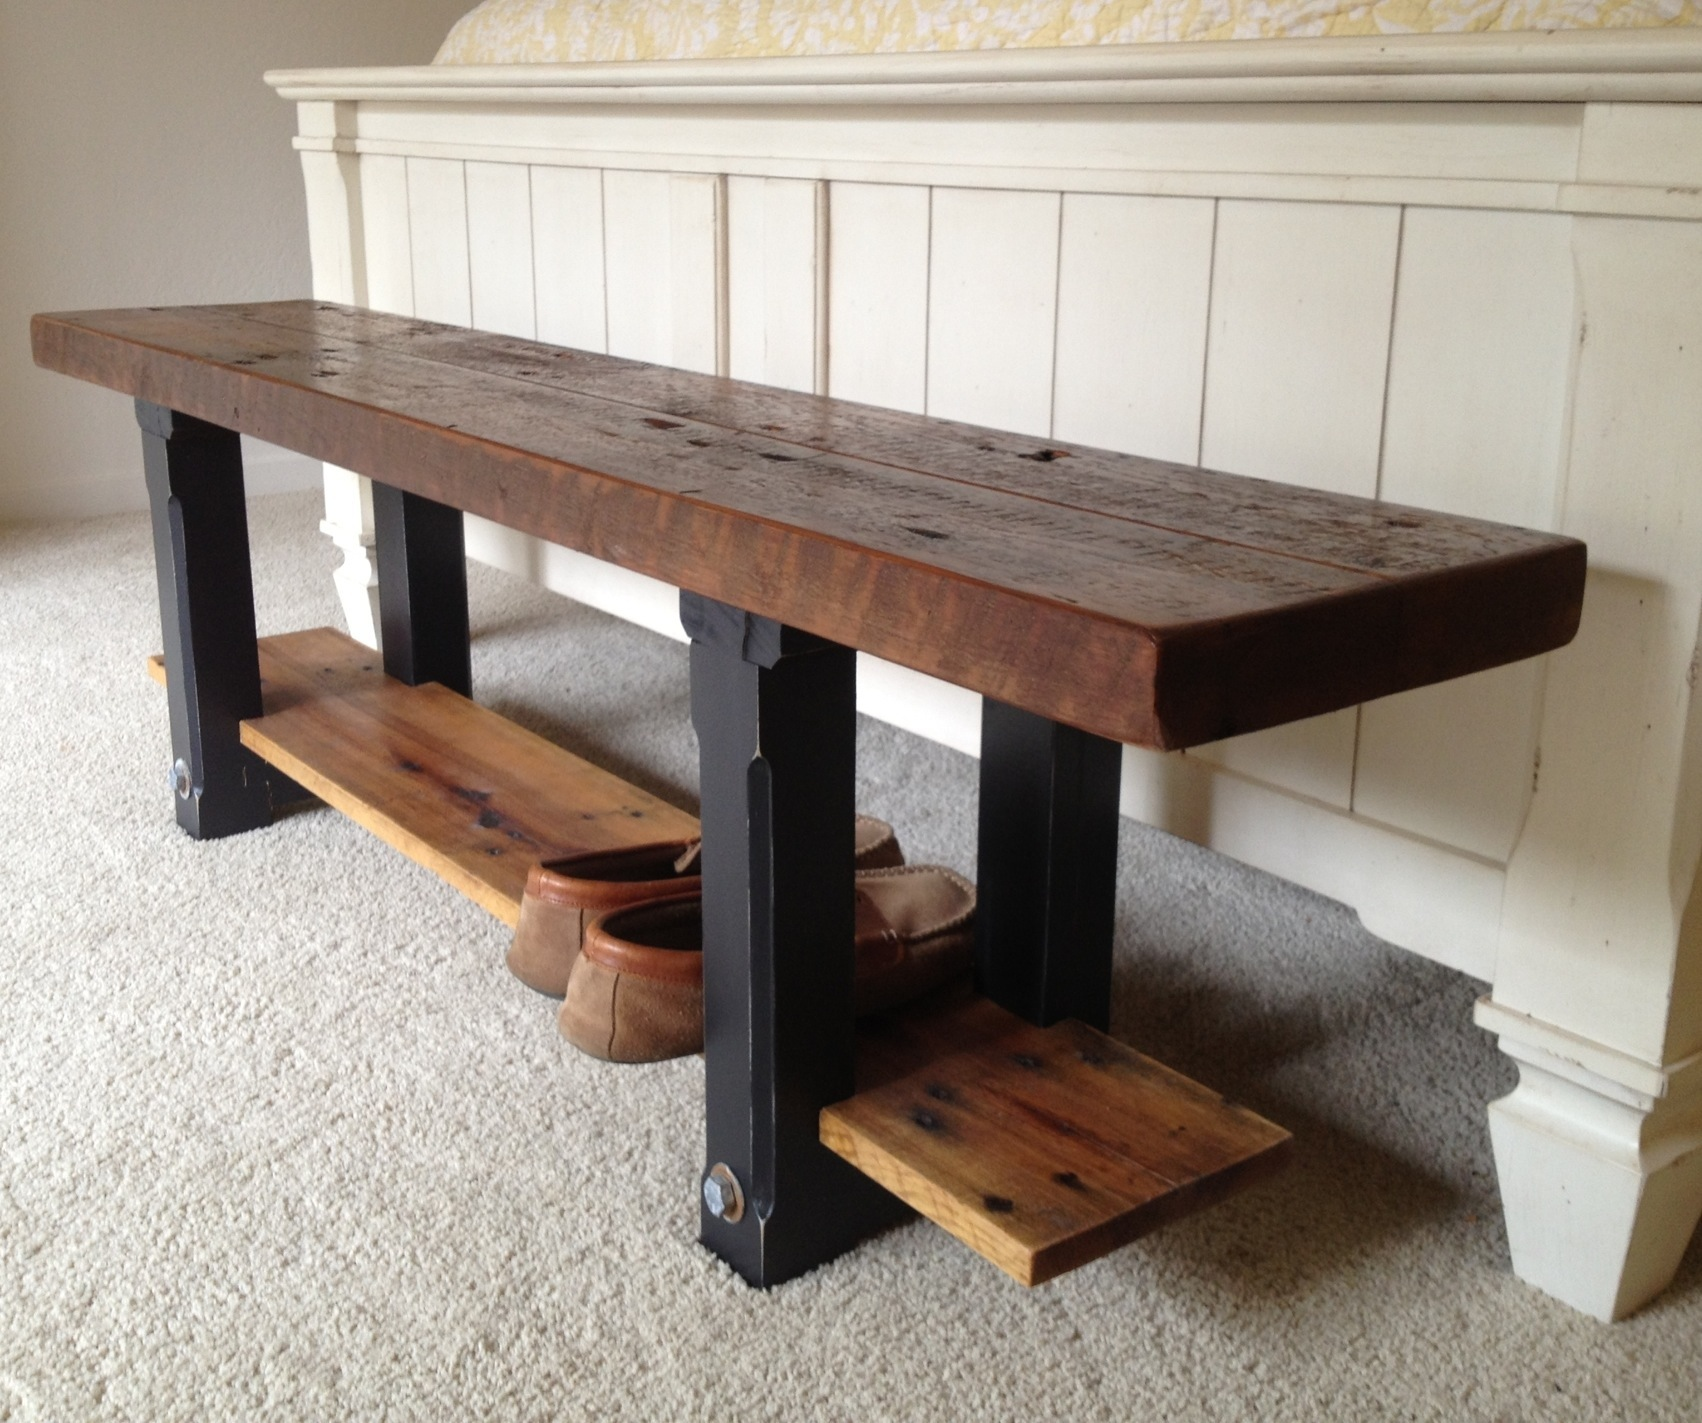 Reclaimed Wood Bench The Coastal Craftsman